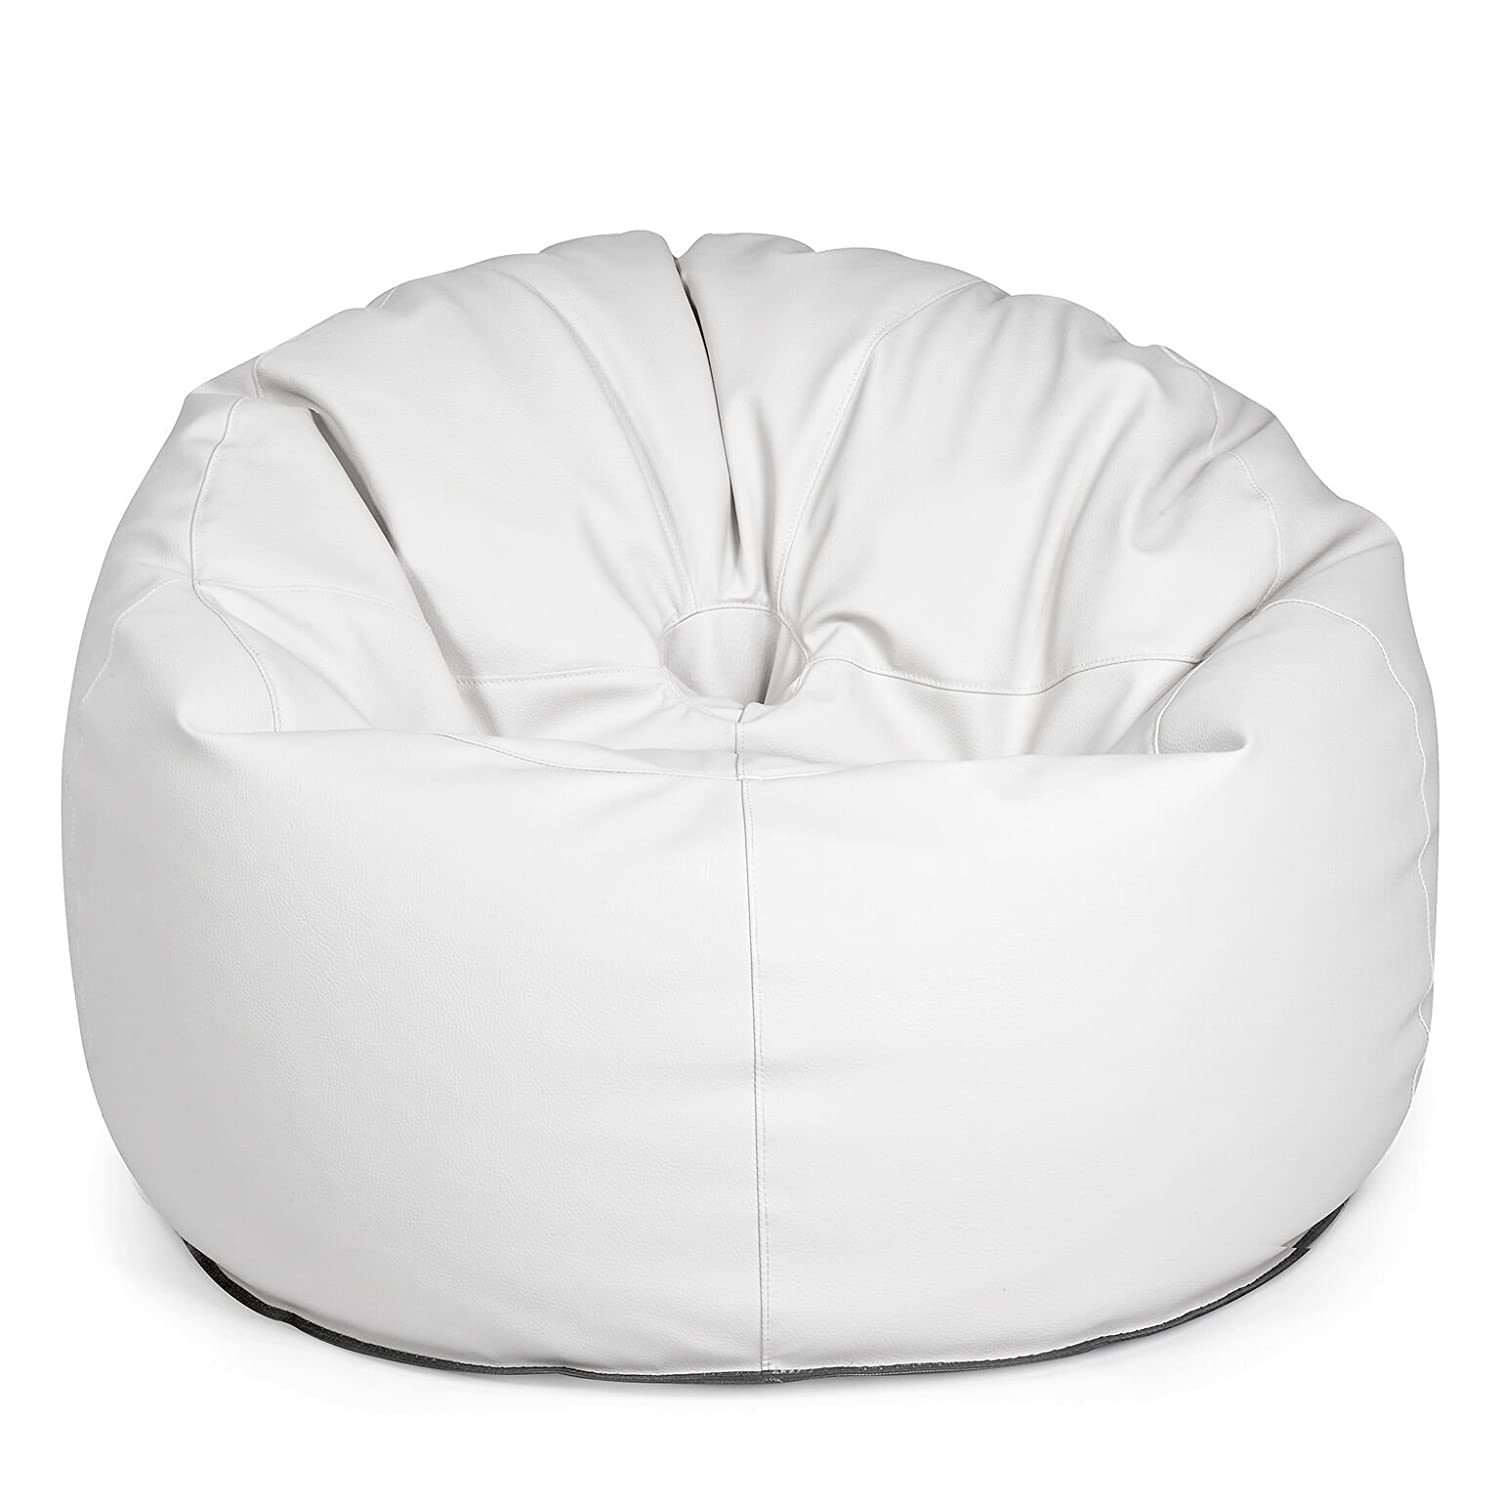 outdoor sitzsack sessel donut light white wei lederoptik wetterfest frostsicher gartenstuhl. Black Bedroom Furniture Sets. Home Design Ideas